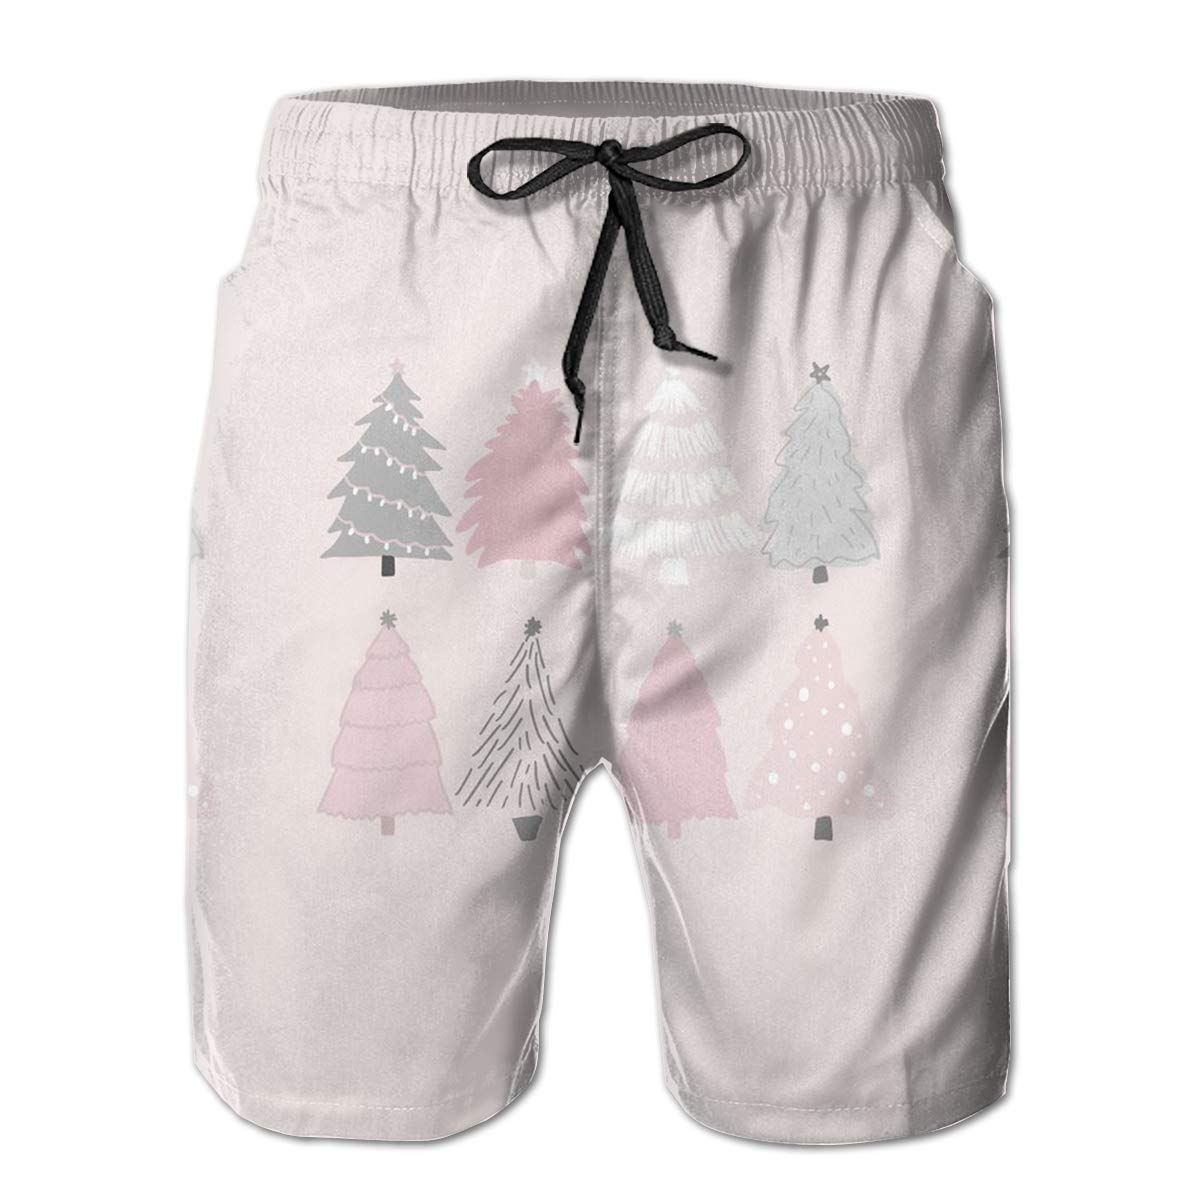 LDFUMG Christmas Tree Mens Beach Board Shorts Quick Dry Summer Casual Swimming Soft Fabric with Pocket